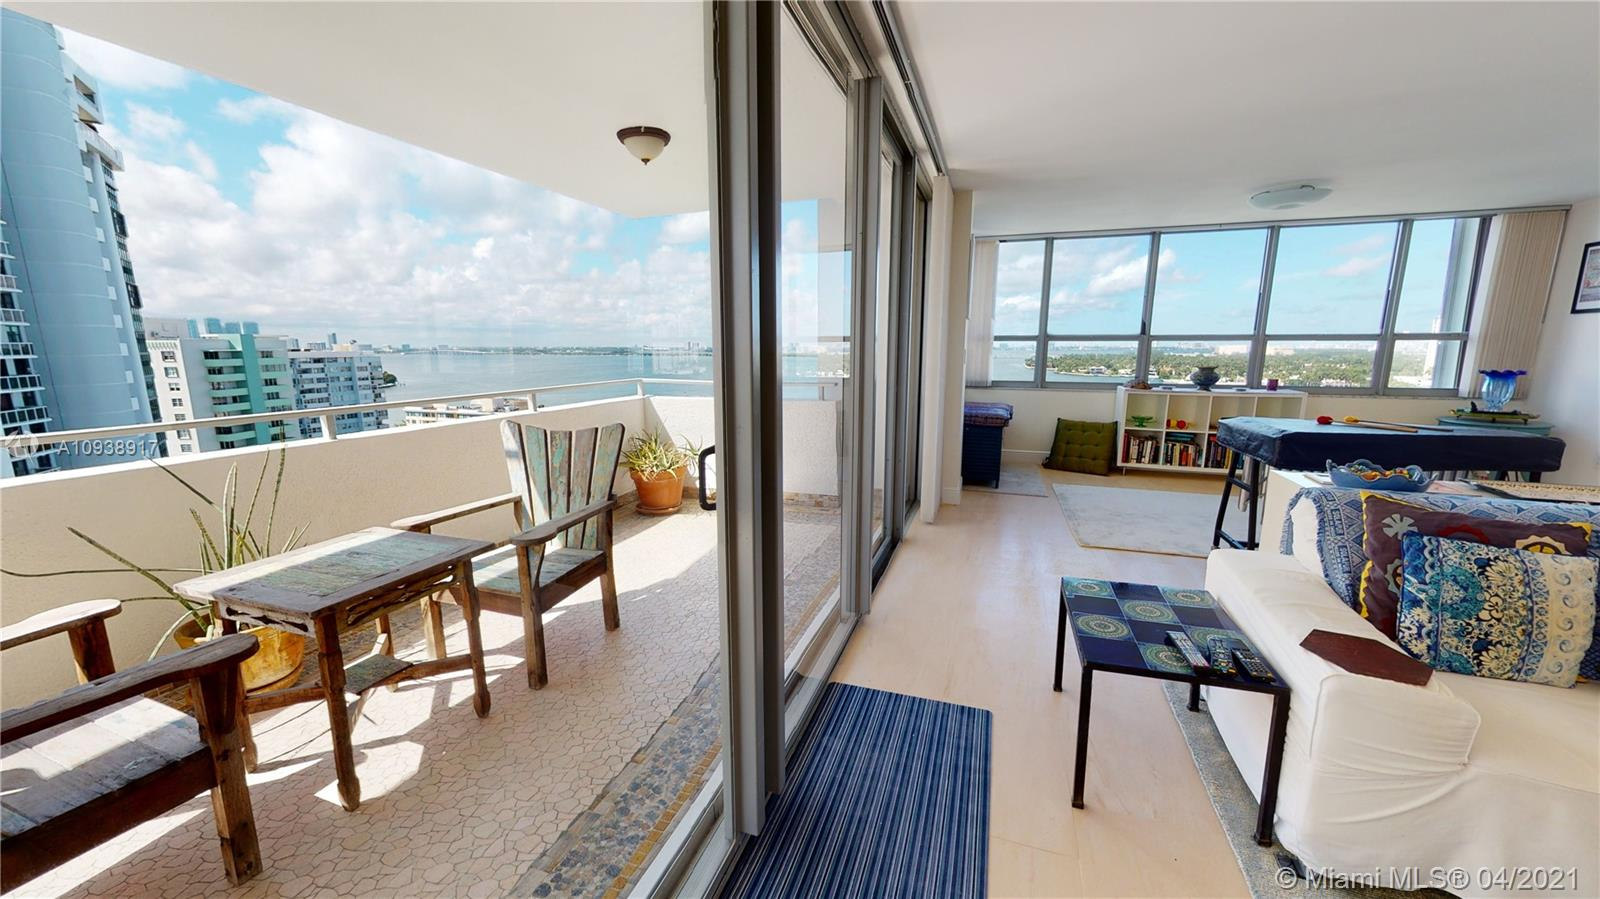 Costa Brava #1711 - 11 Island Ave #1711, Miami Beach, FL 33139